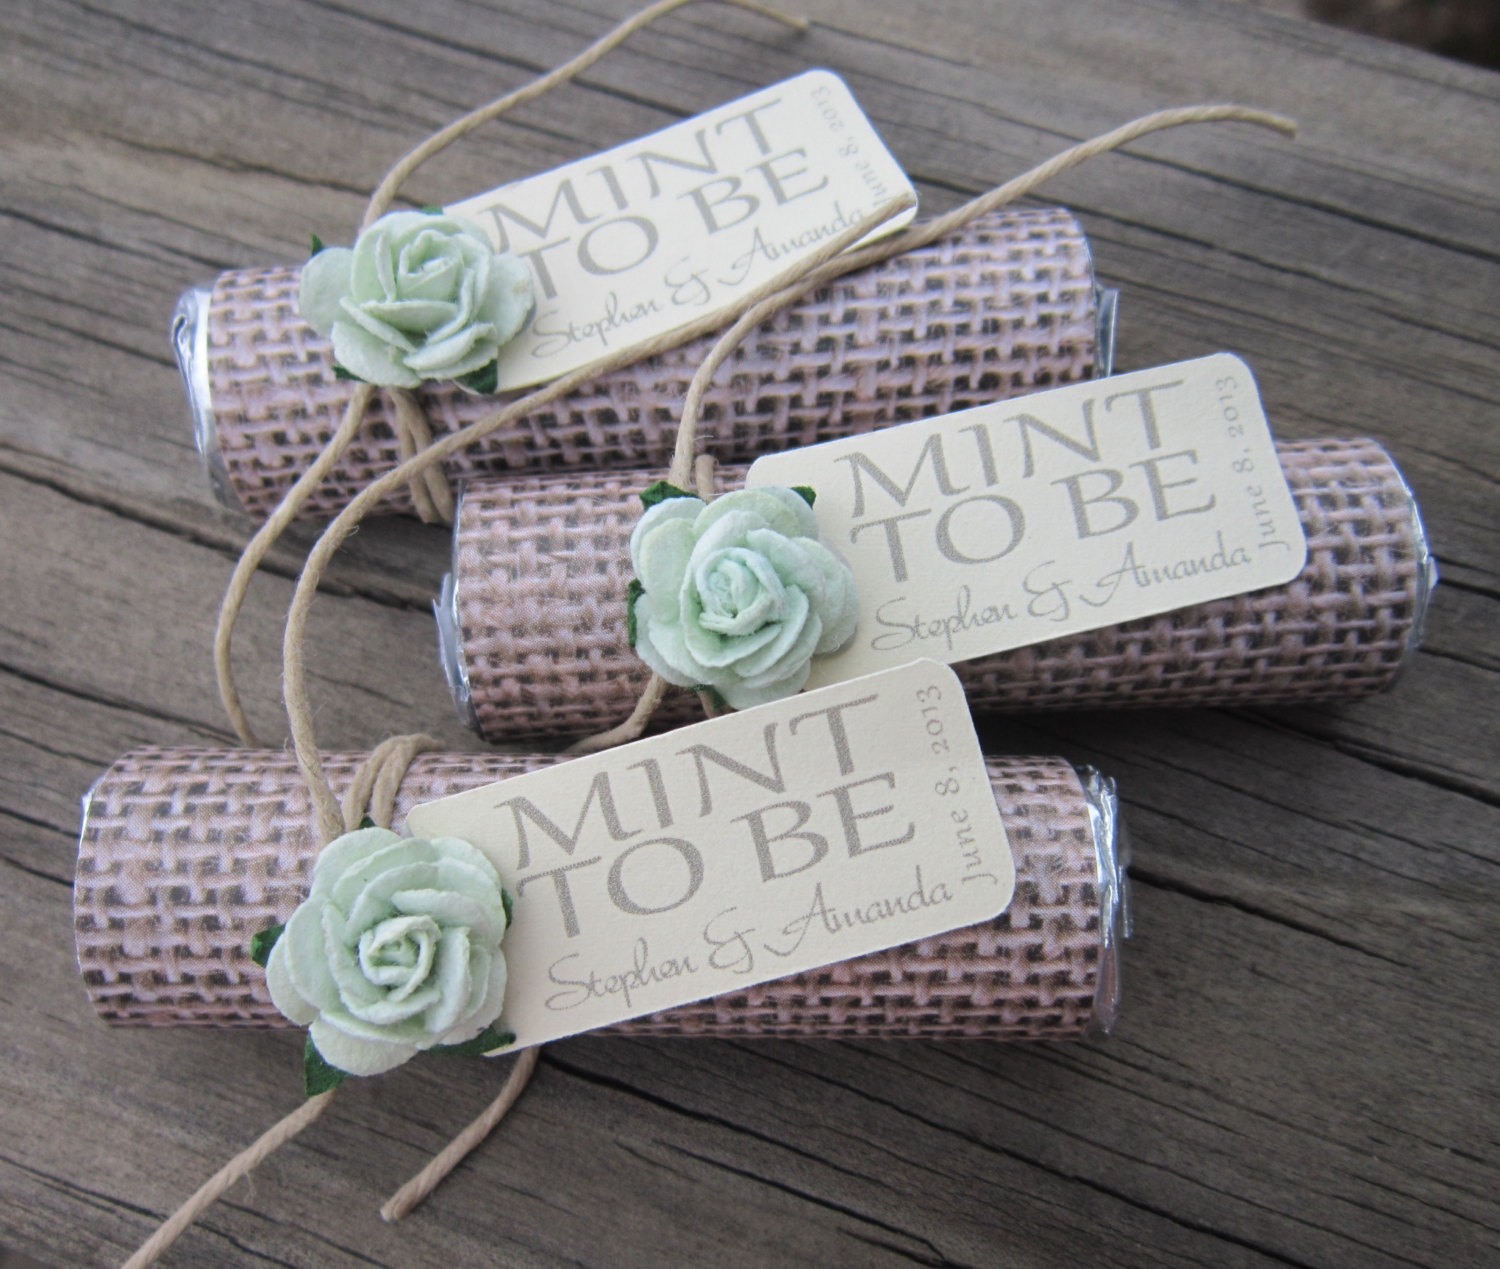 mint-to-be-wedding-favor